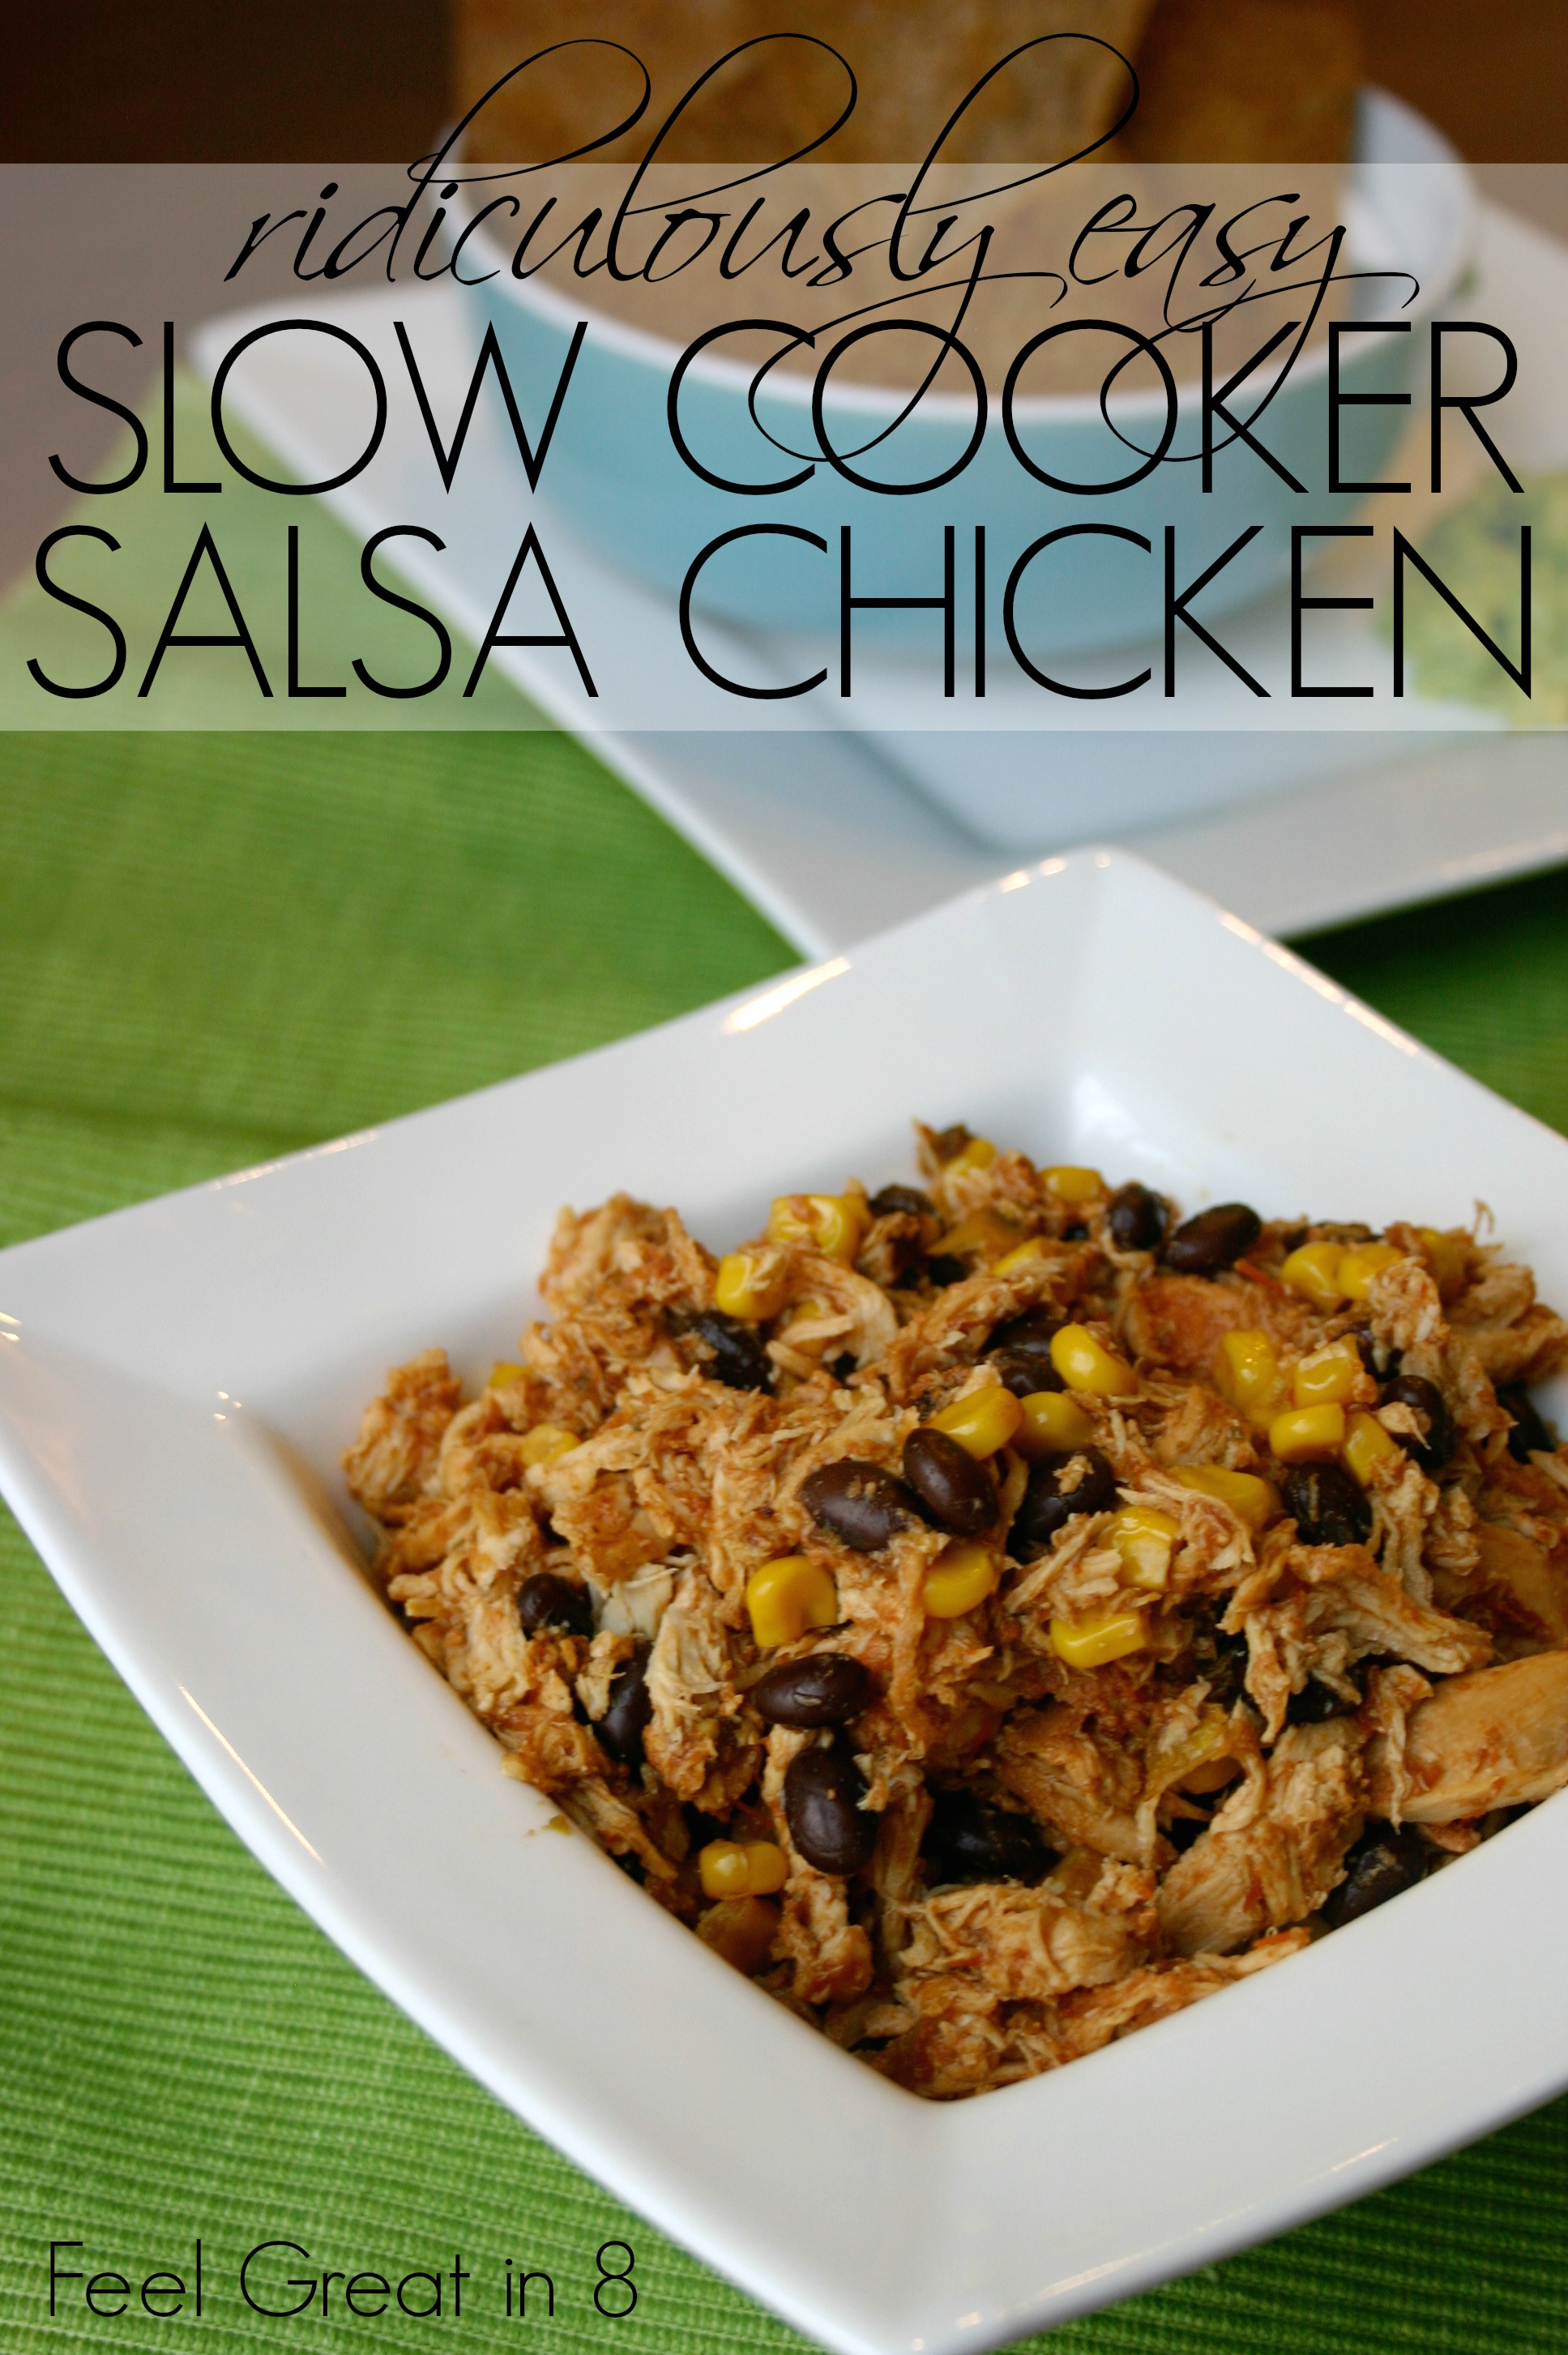 Ridiculously Easy Slow Cooker Salsa Chicken